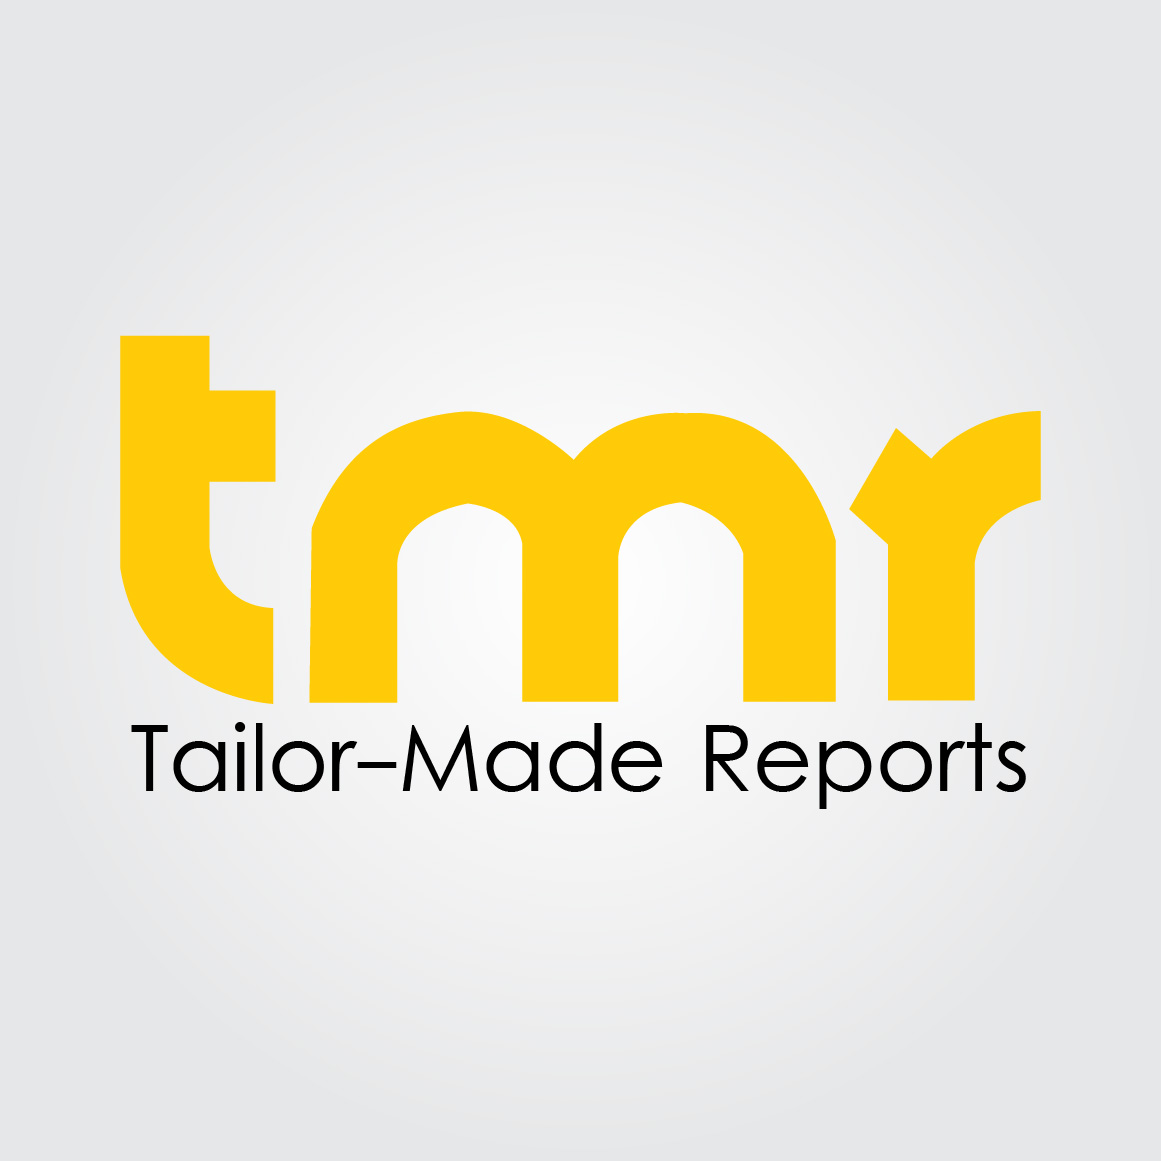 Robot End-Effector Market is estimated to observe promising growth by 2030 | TMR Research Study